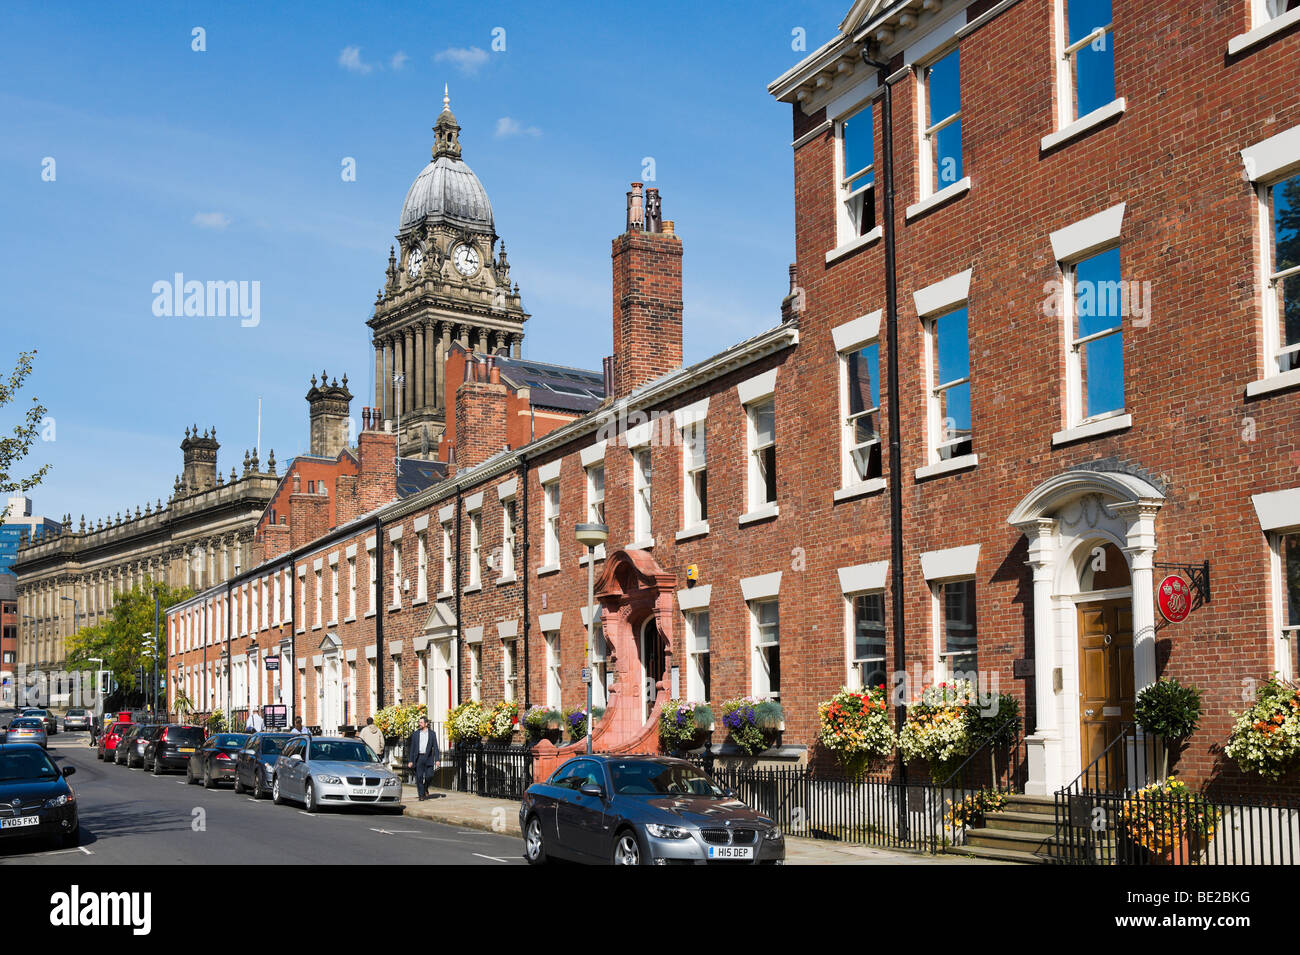 Park Square with the Town Hall clock tower behind, Leeds, West Yorkshire, England - Stock Image